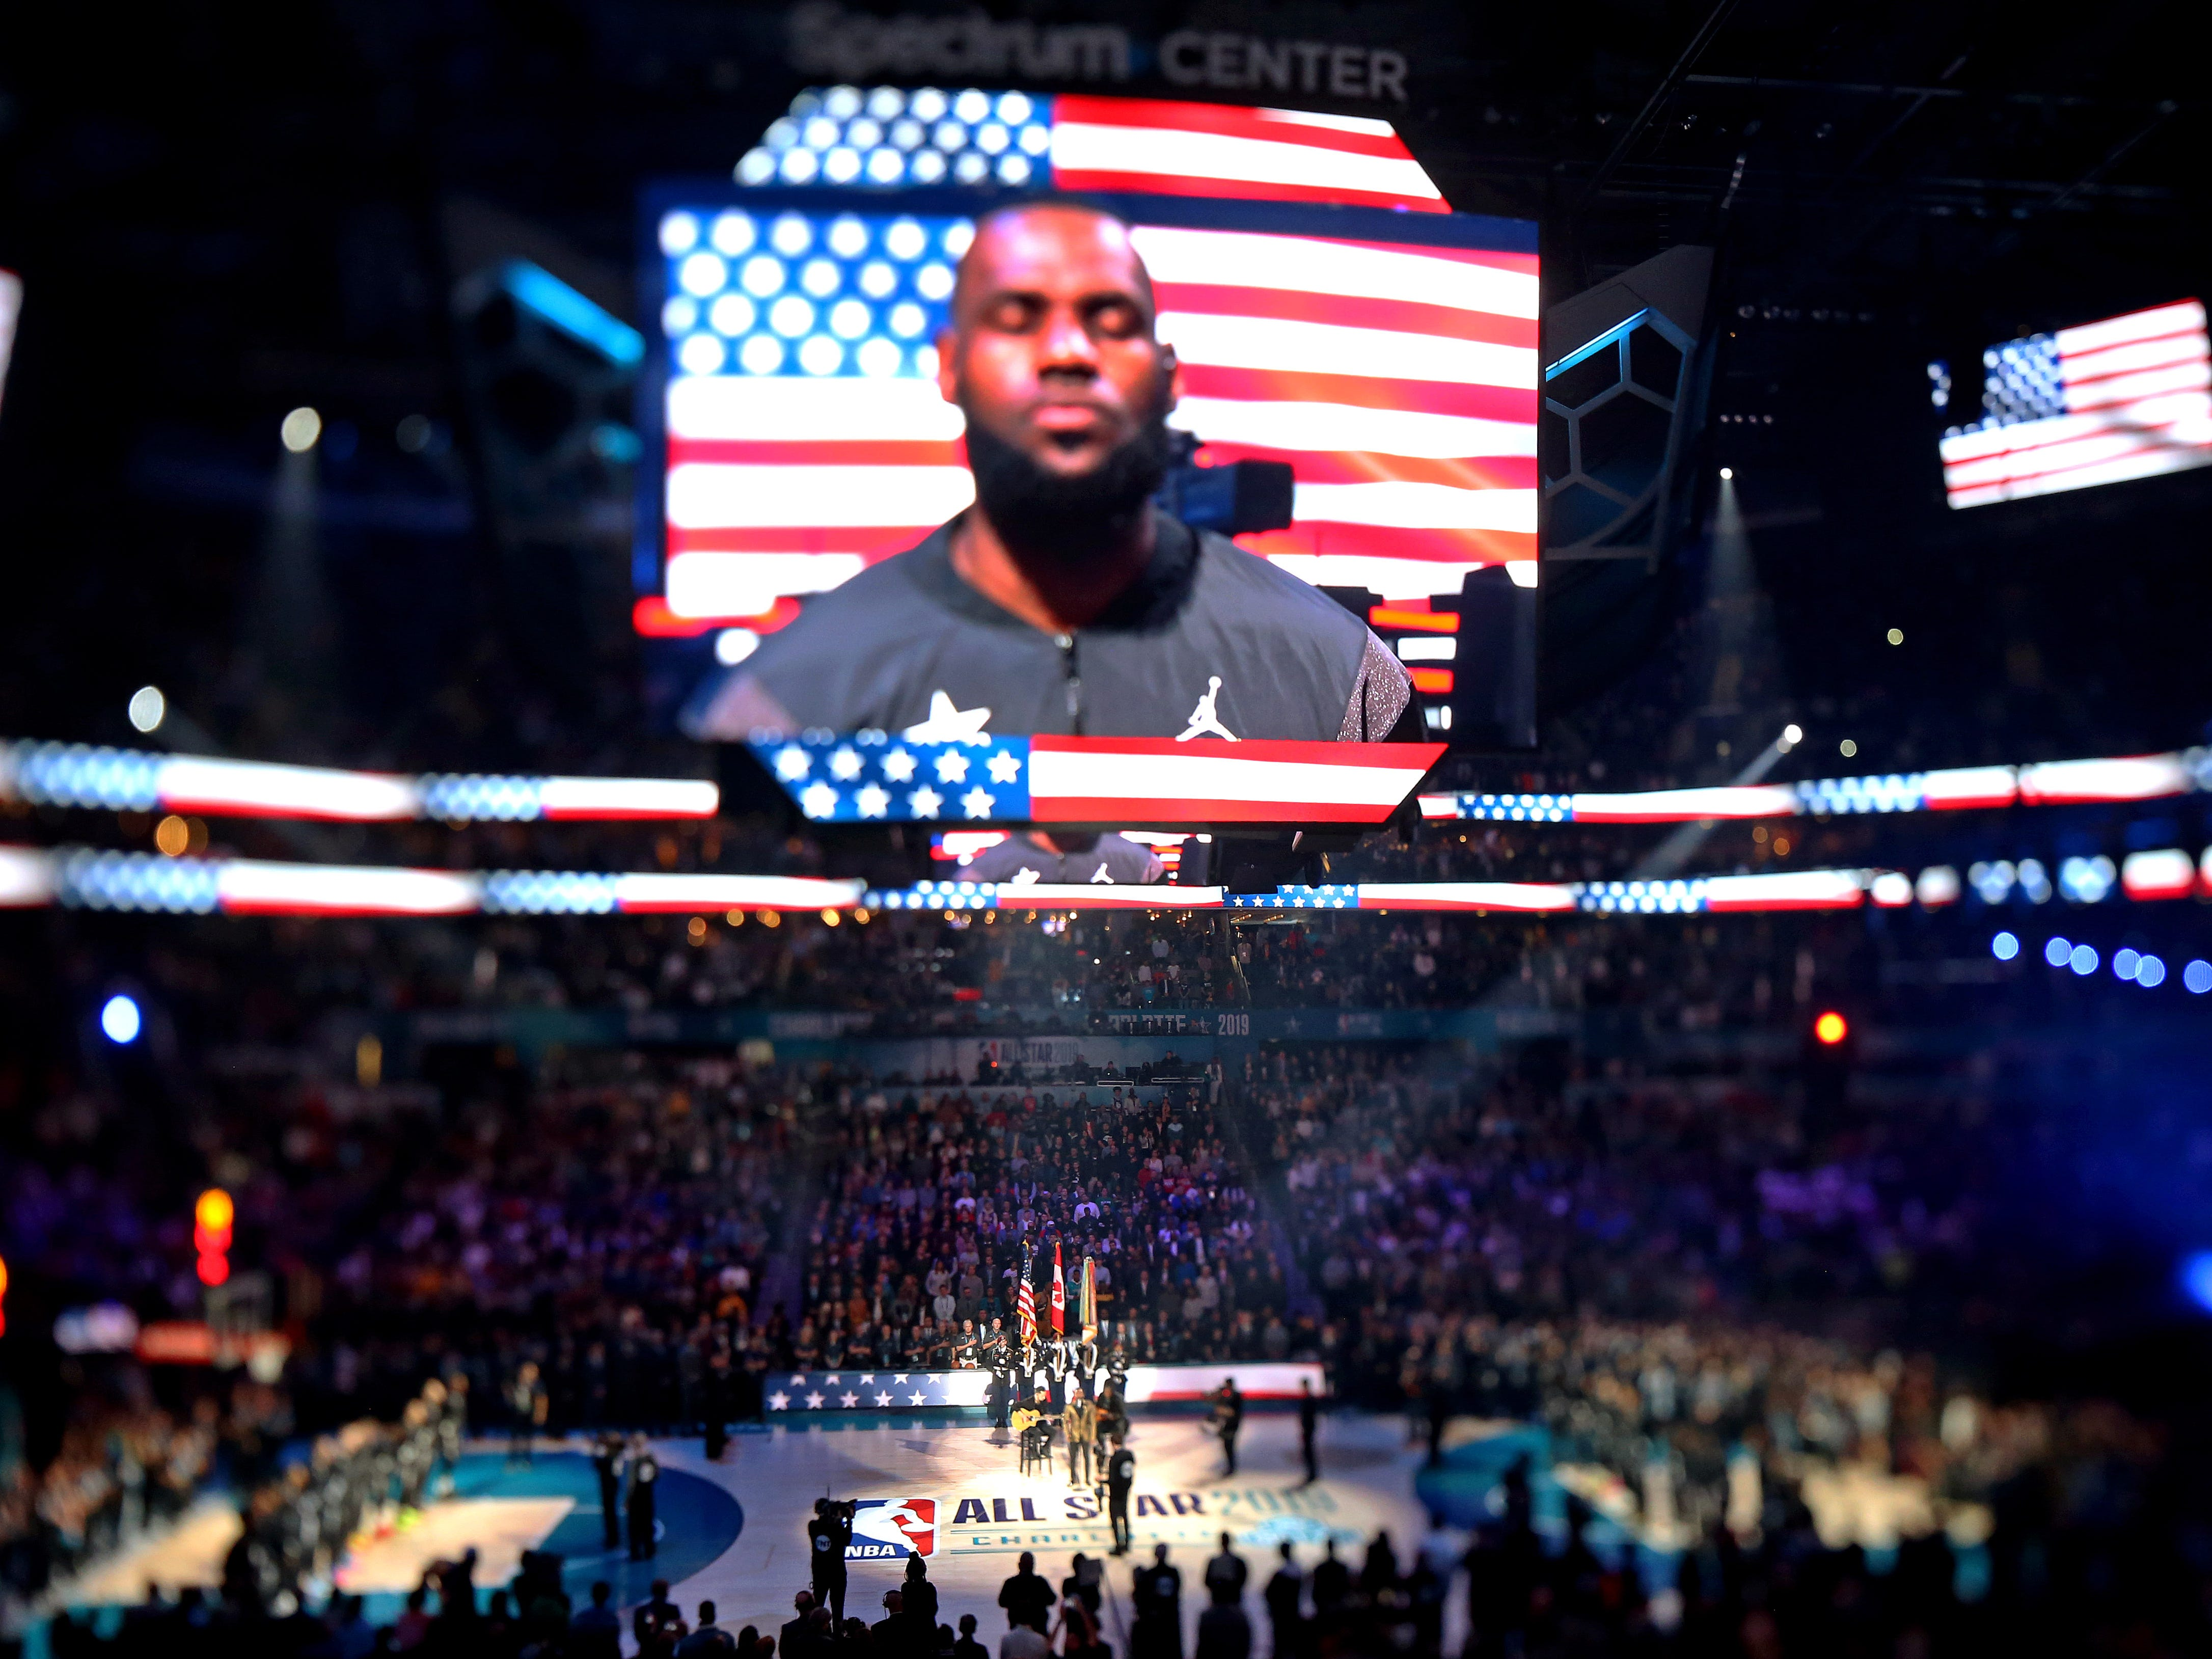 LeBron James is shown on the jumbotron during the national anthem before the All-Star Game.